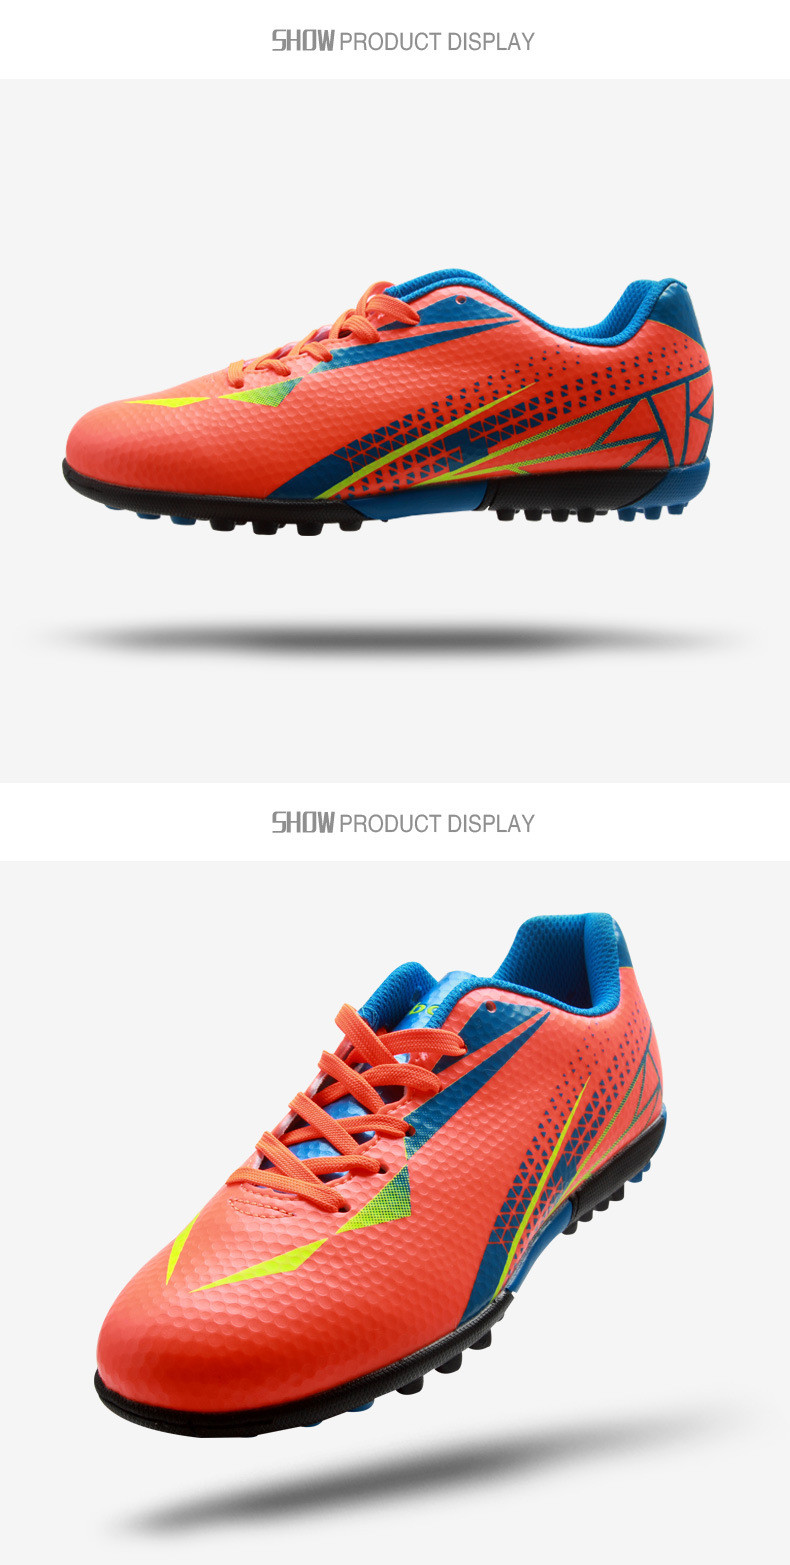 new soccer shoes boots futsal chaussures foot mens indoor football boots voetbalschoenen football cleats soccer shoes 3 colorsusd 35 99 pair  [ 790 x 1565 Pixel ]